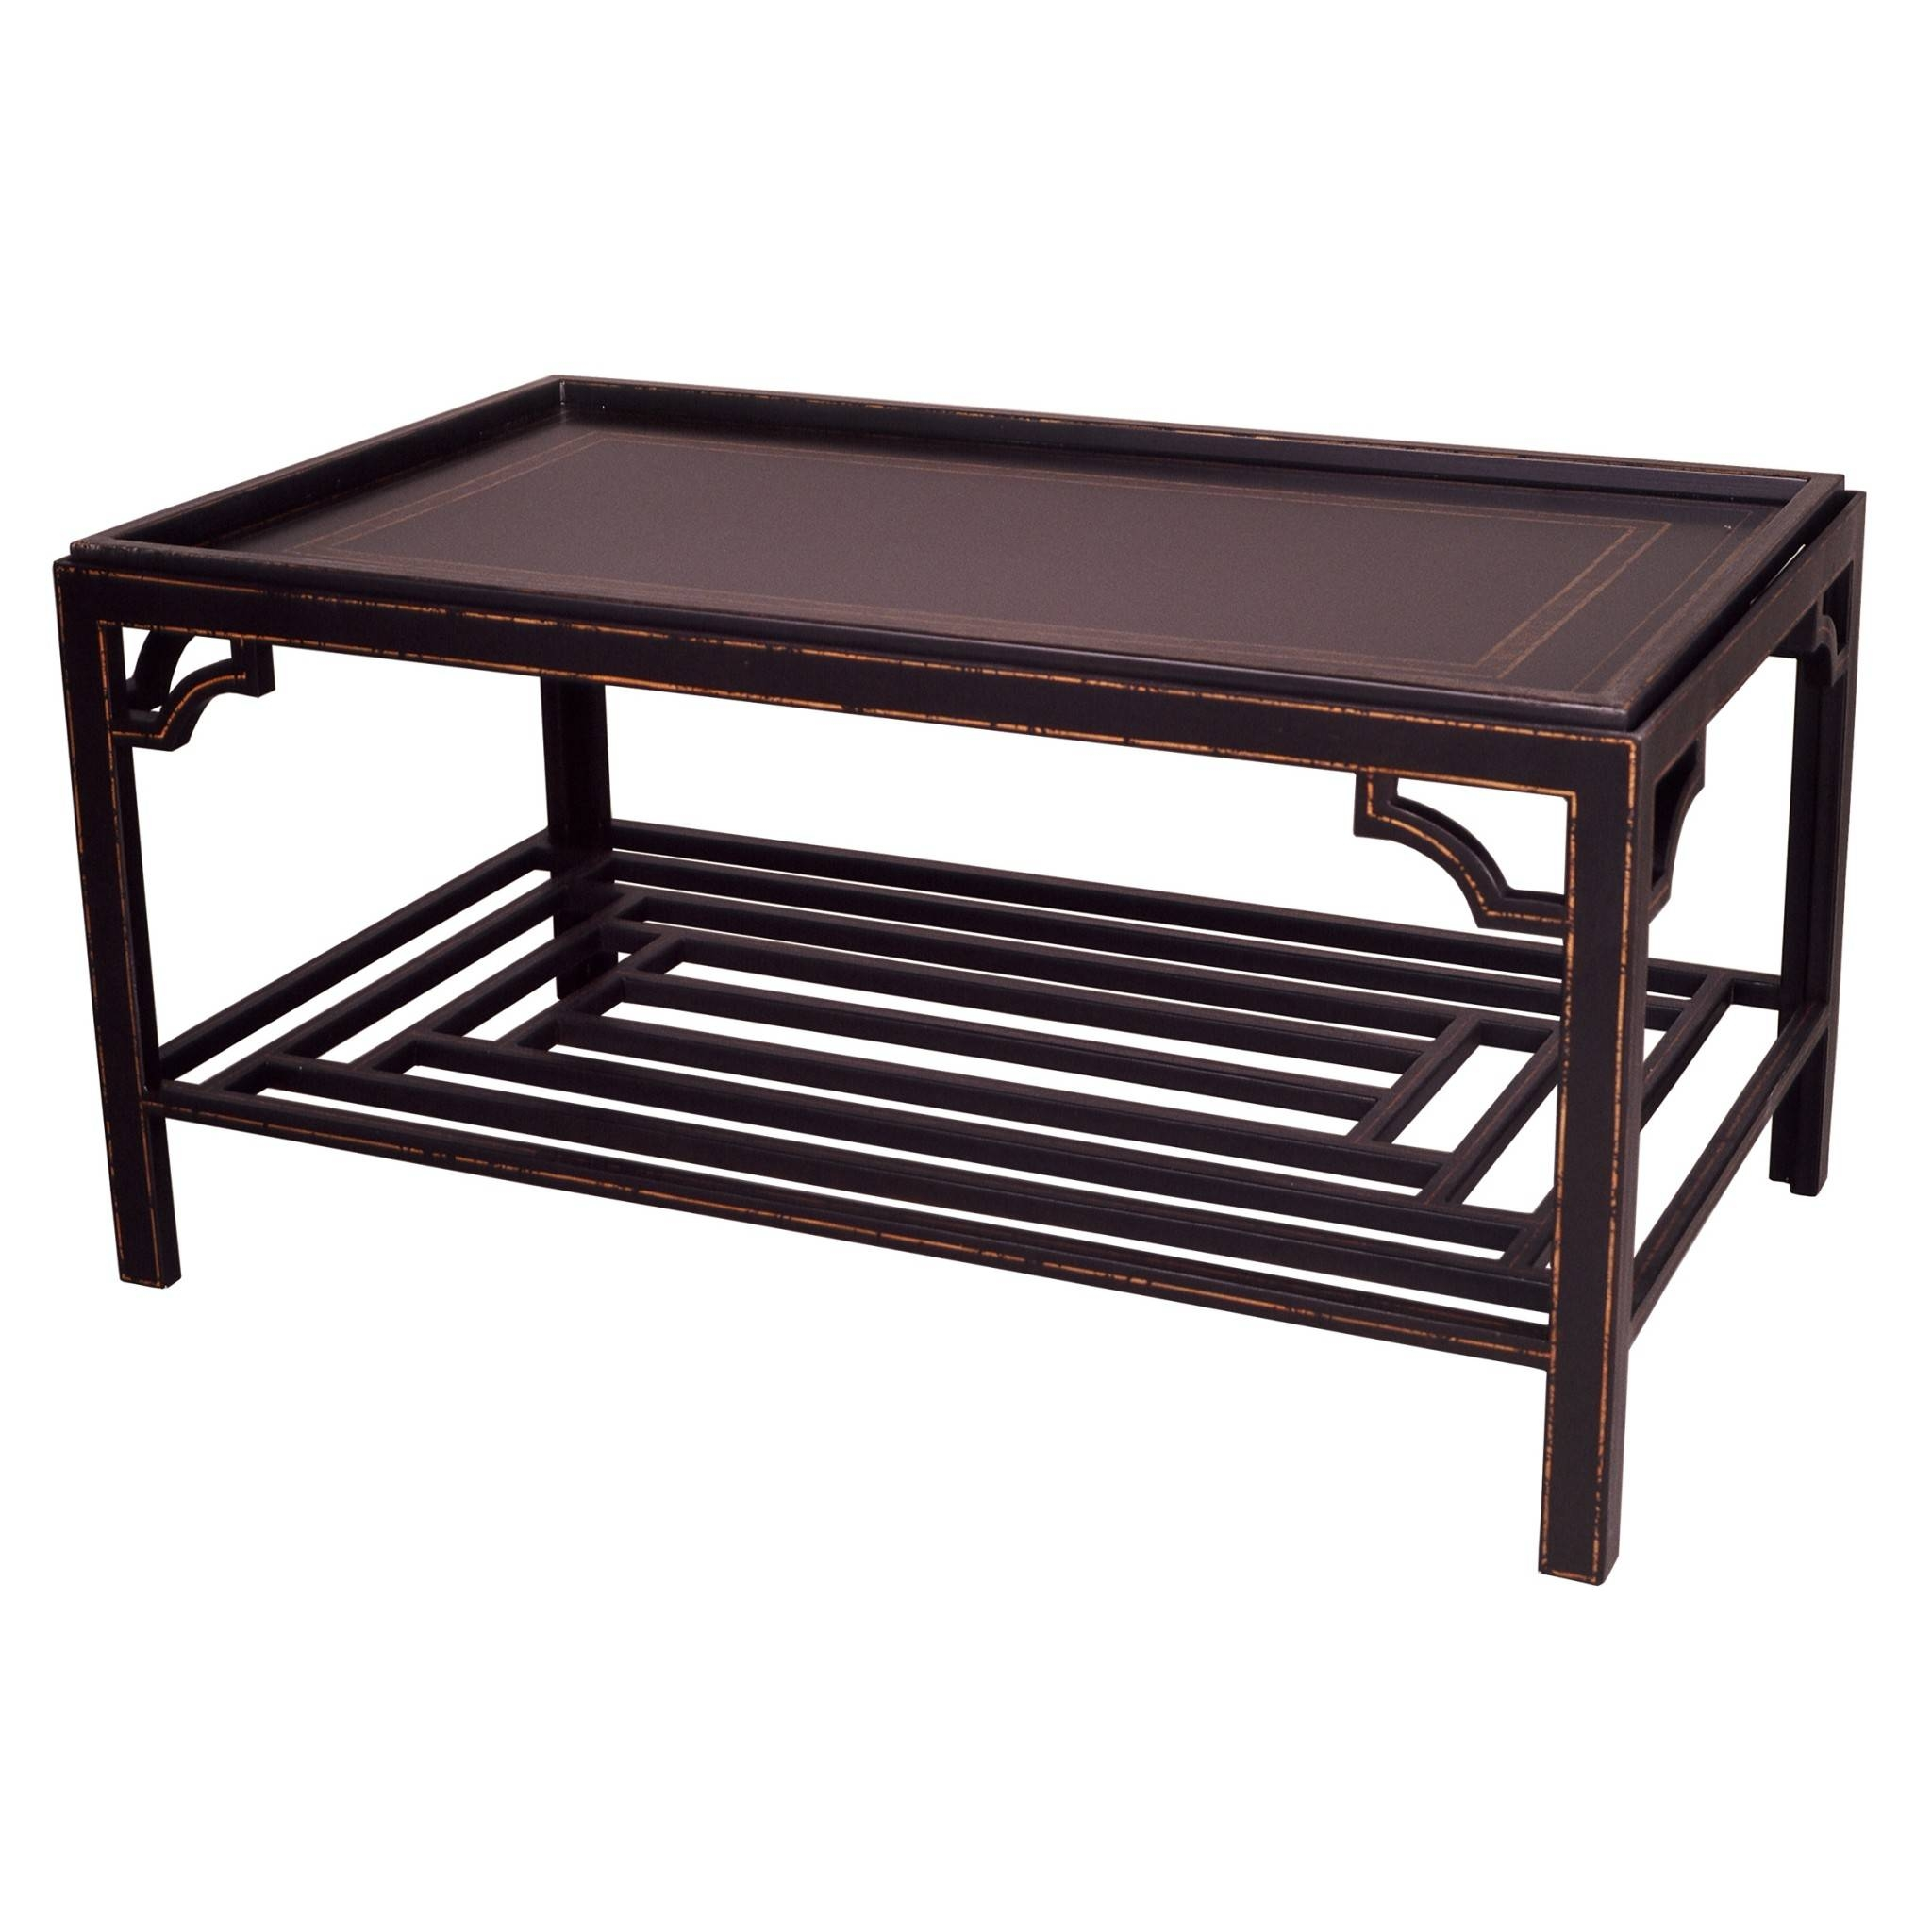 Coffee Tables | Product Categories | Niermann Weeks throughout Chinese Coffee Tables (Image 17 of 30)